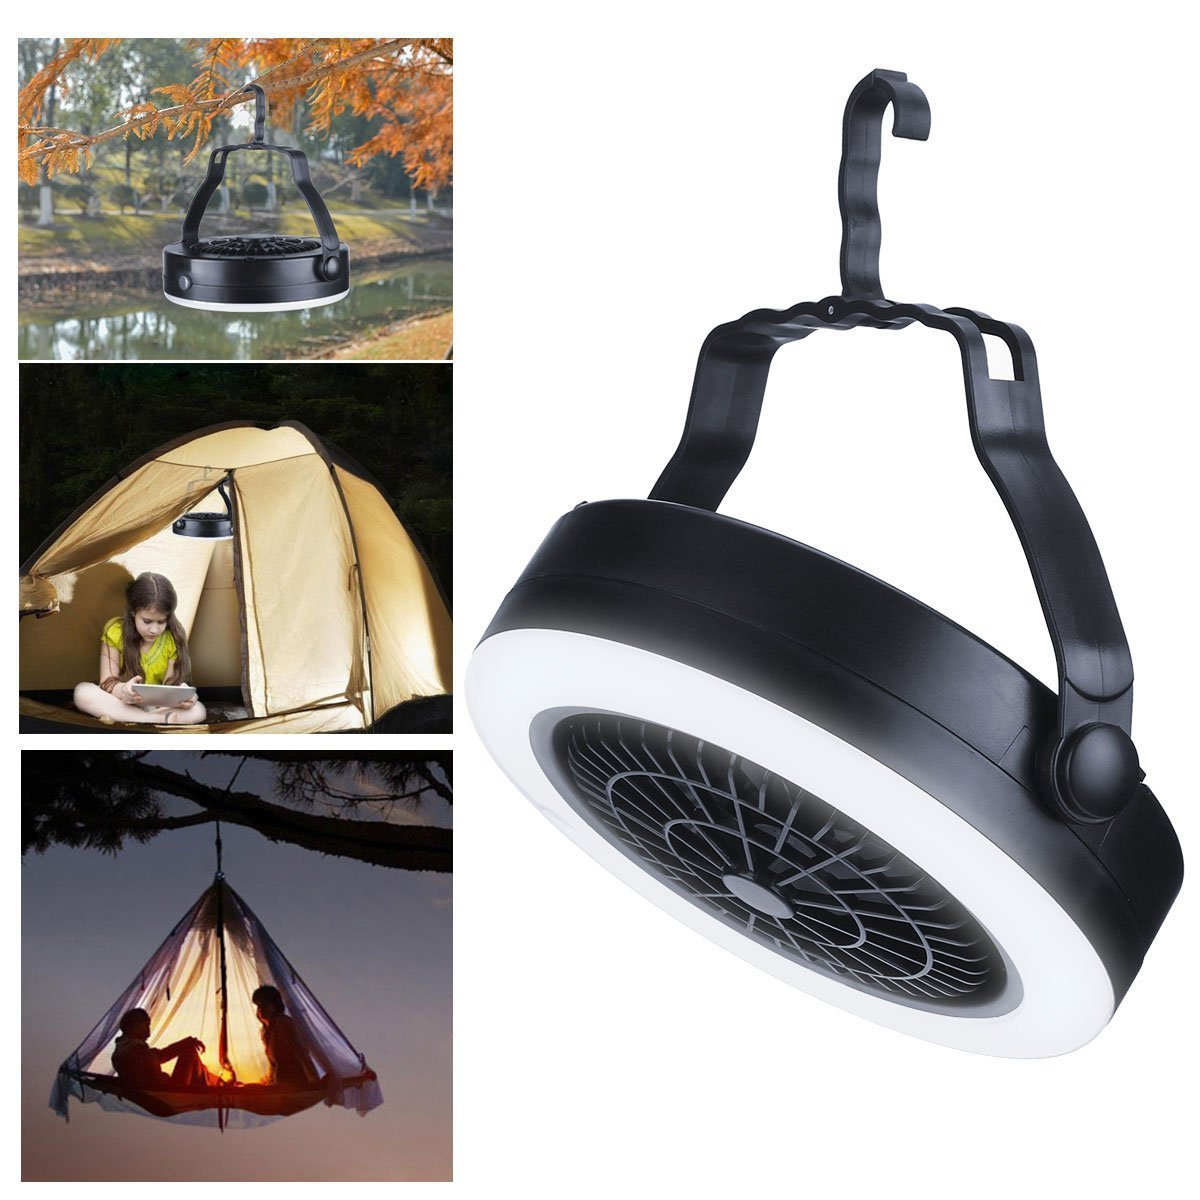 【BUY TWO FREE SHIPPING】New 3-in-1 camping lamp camping fan lamp 18LED